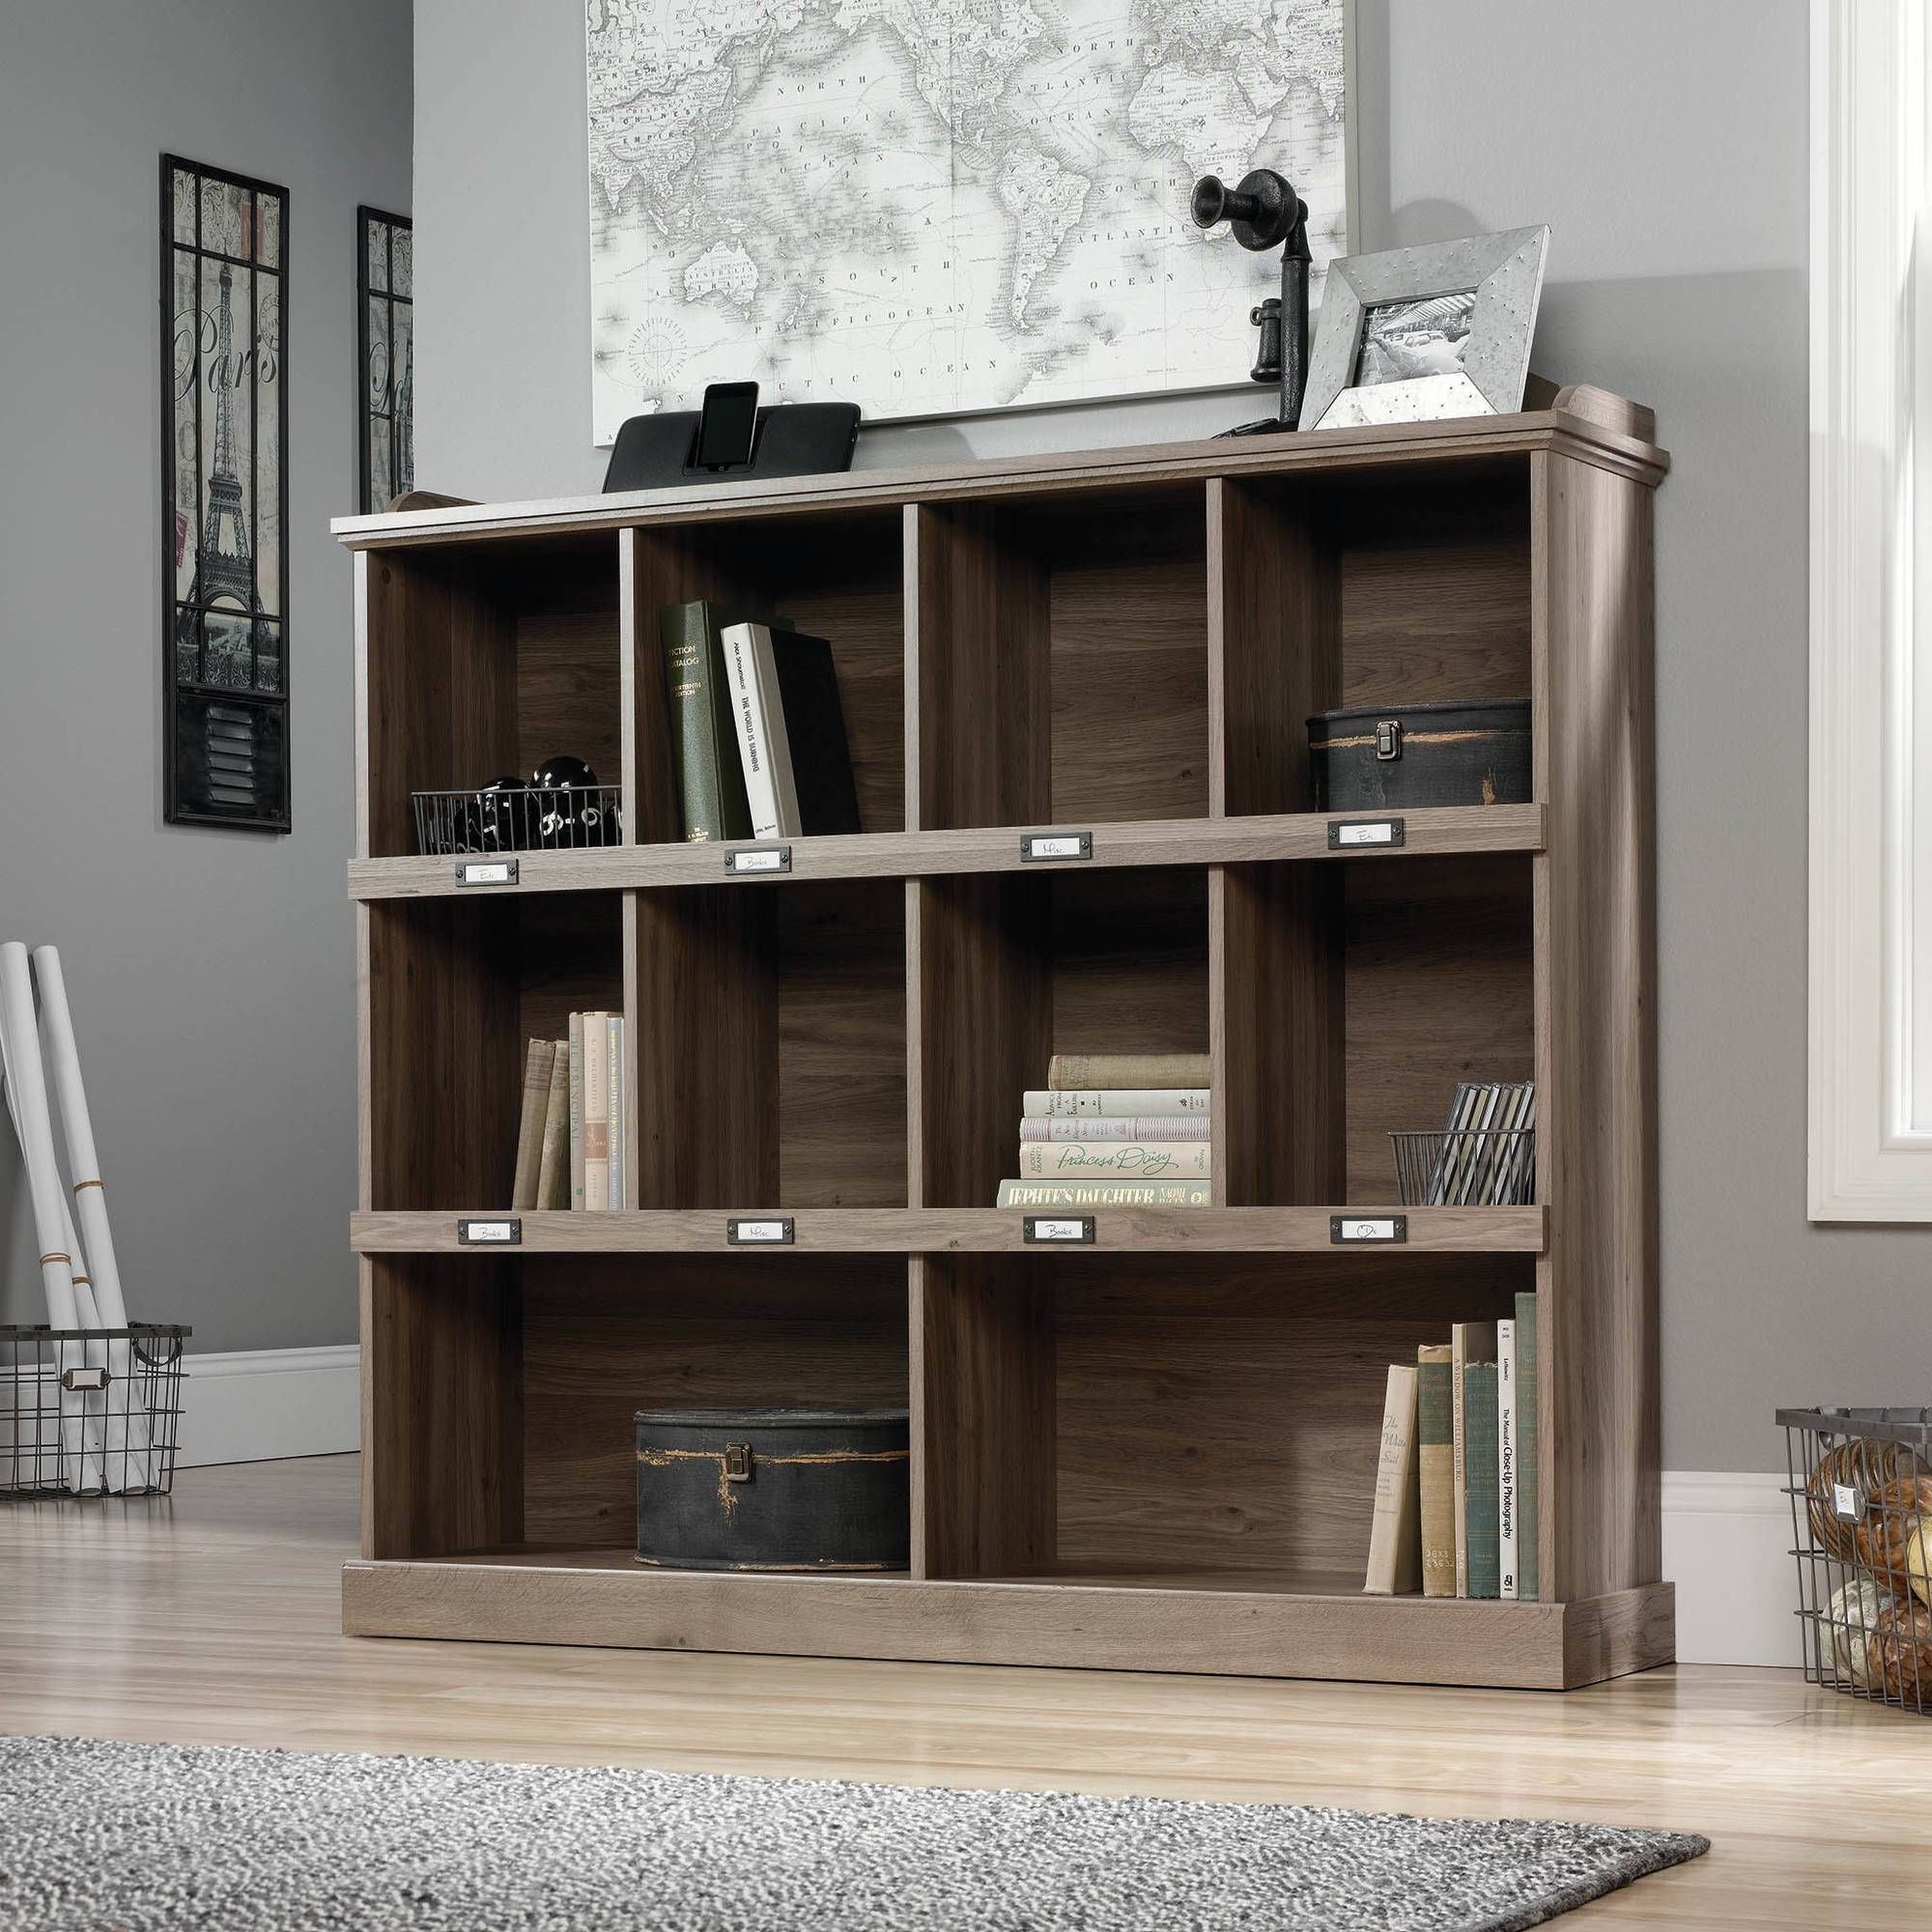 Sauder Barrister Lane Bookcase, Multiple Colors